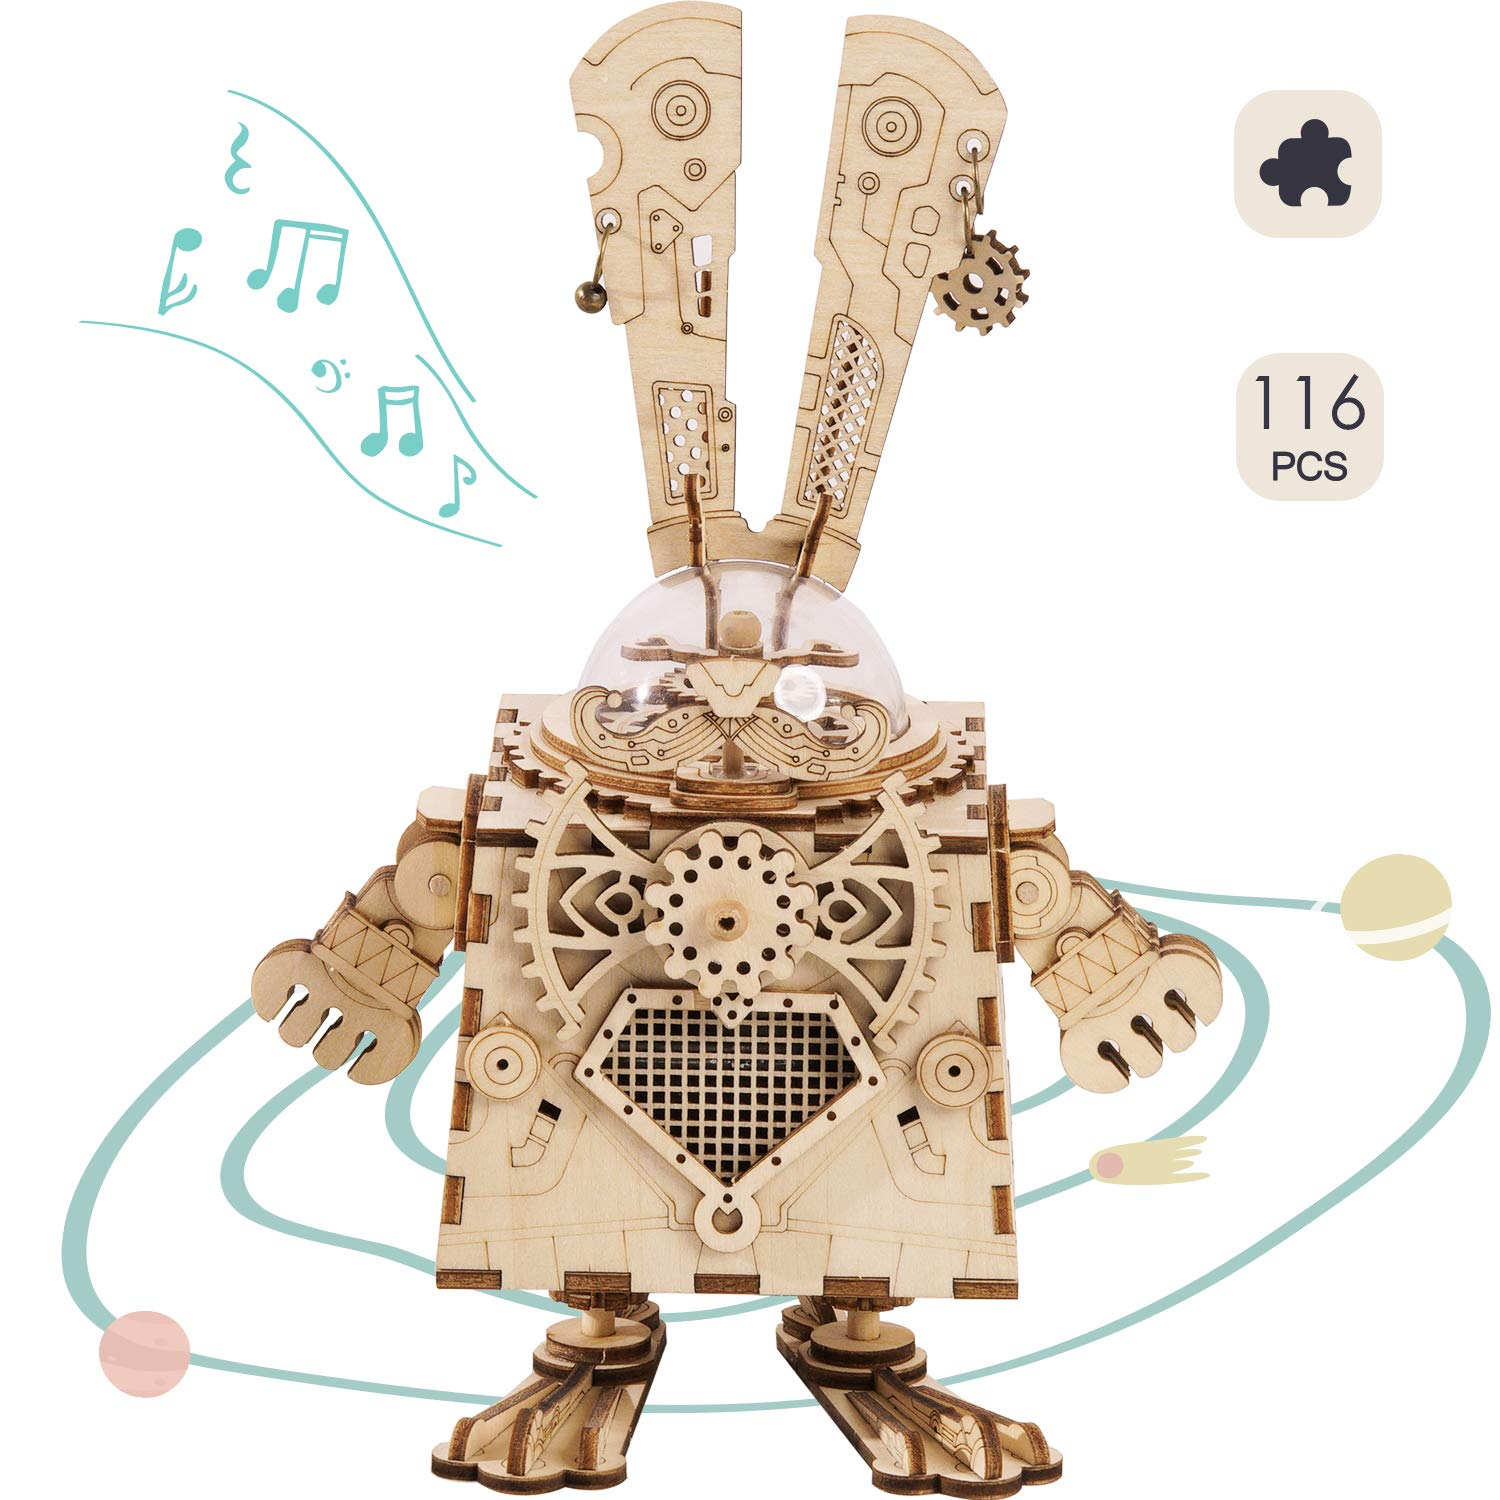 (Bunny) Bunny - ウサギ ROKR 3D Wooden Puzzle Girls Music Box Craft Kit DIY Toy Figures for Boys and Girls Bunny ウサギ B07NQCZPMX, 南山城村:ca09648d --- m2cweb.com